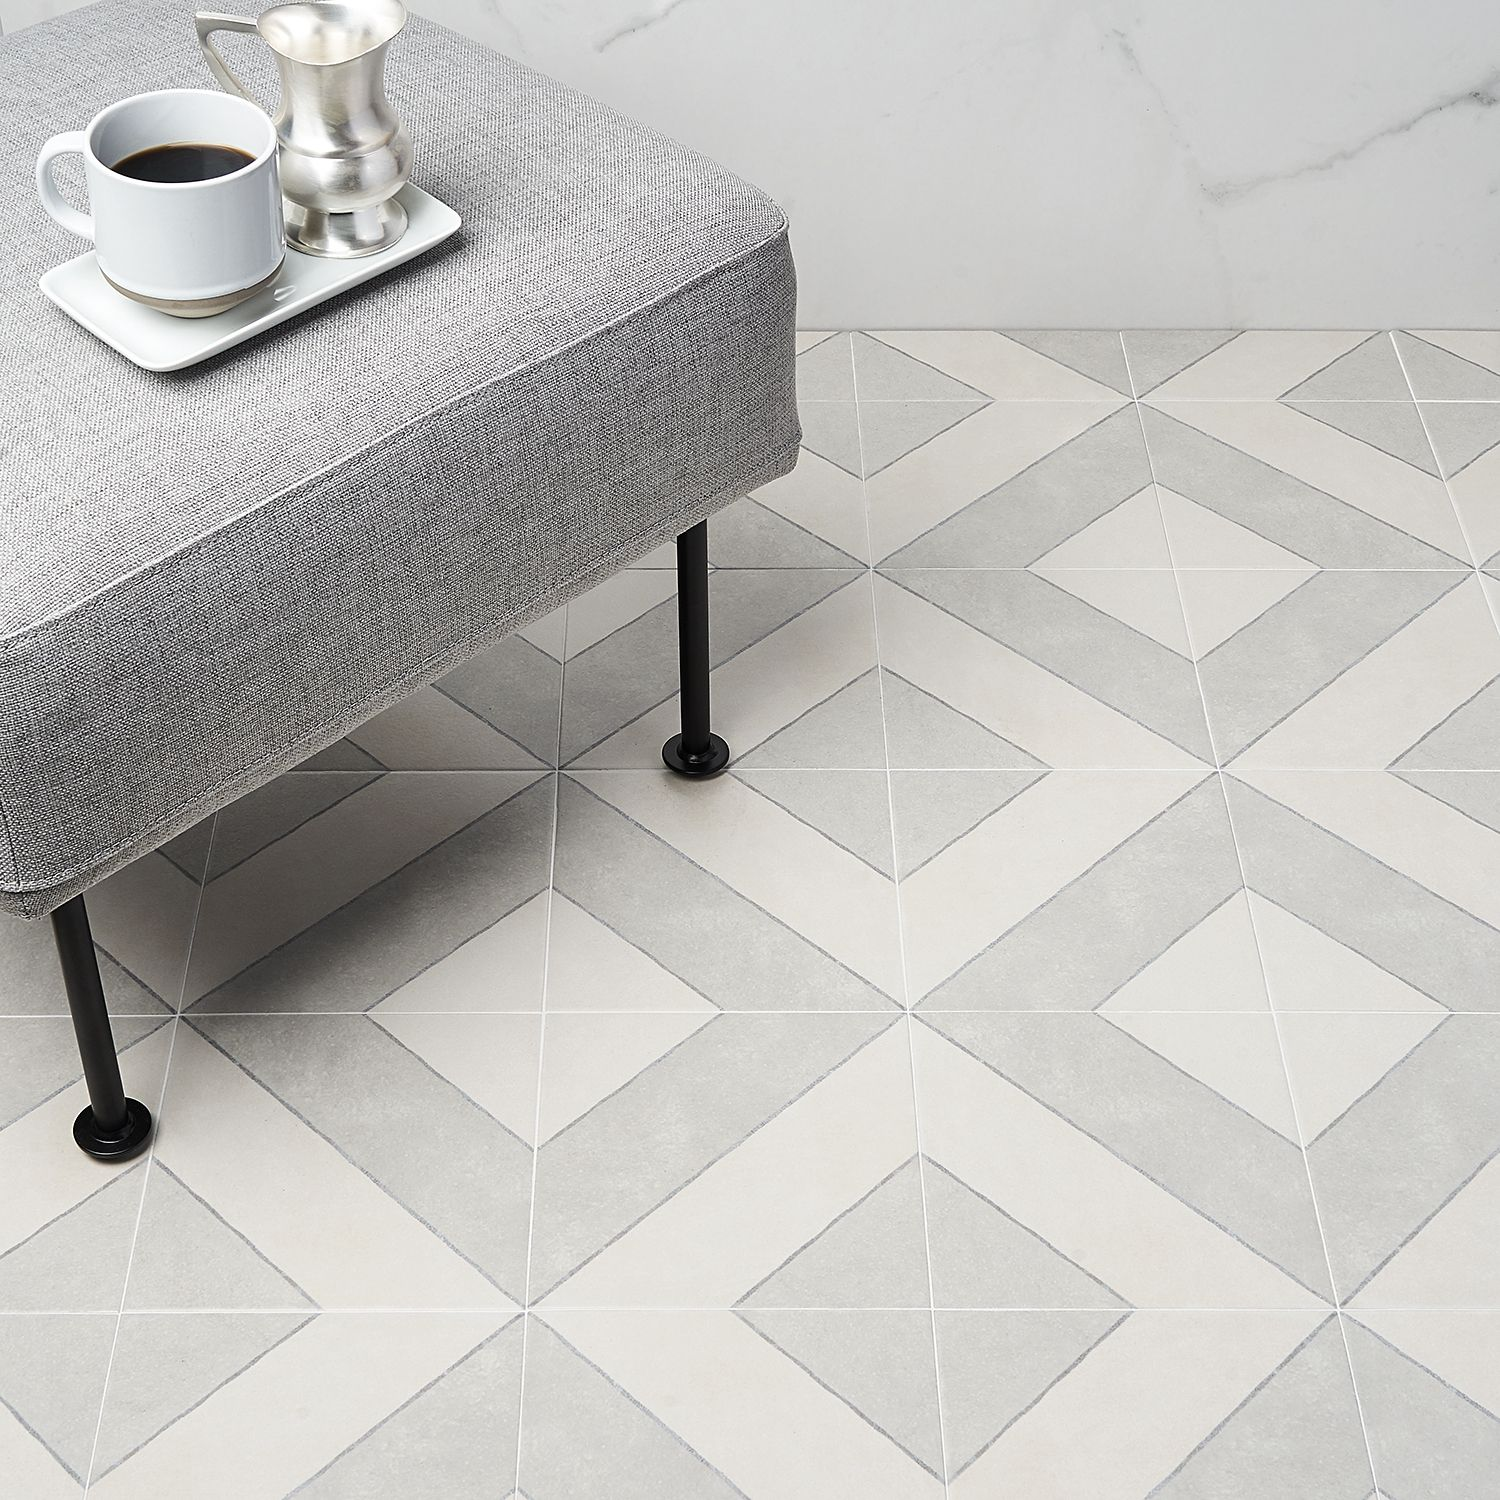 Auteur Diagonals Ash 9x9 Porcelain Tile: Pattern 2